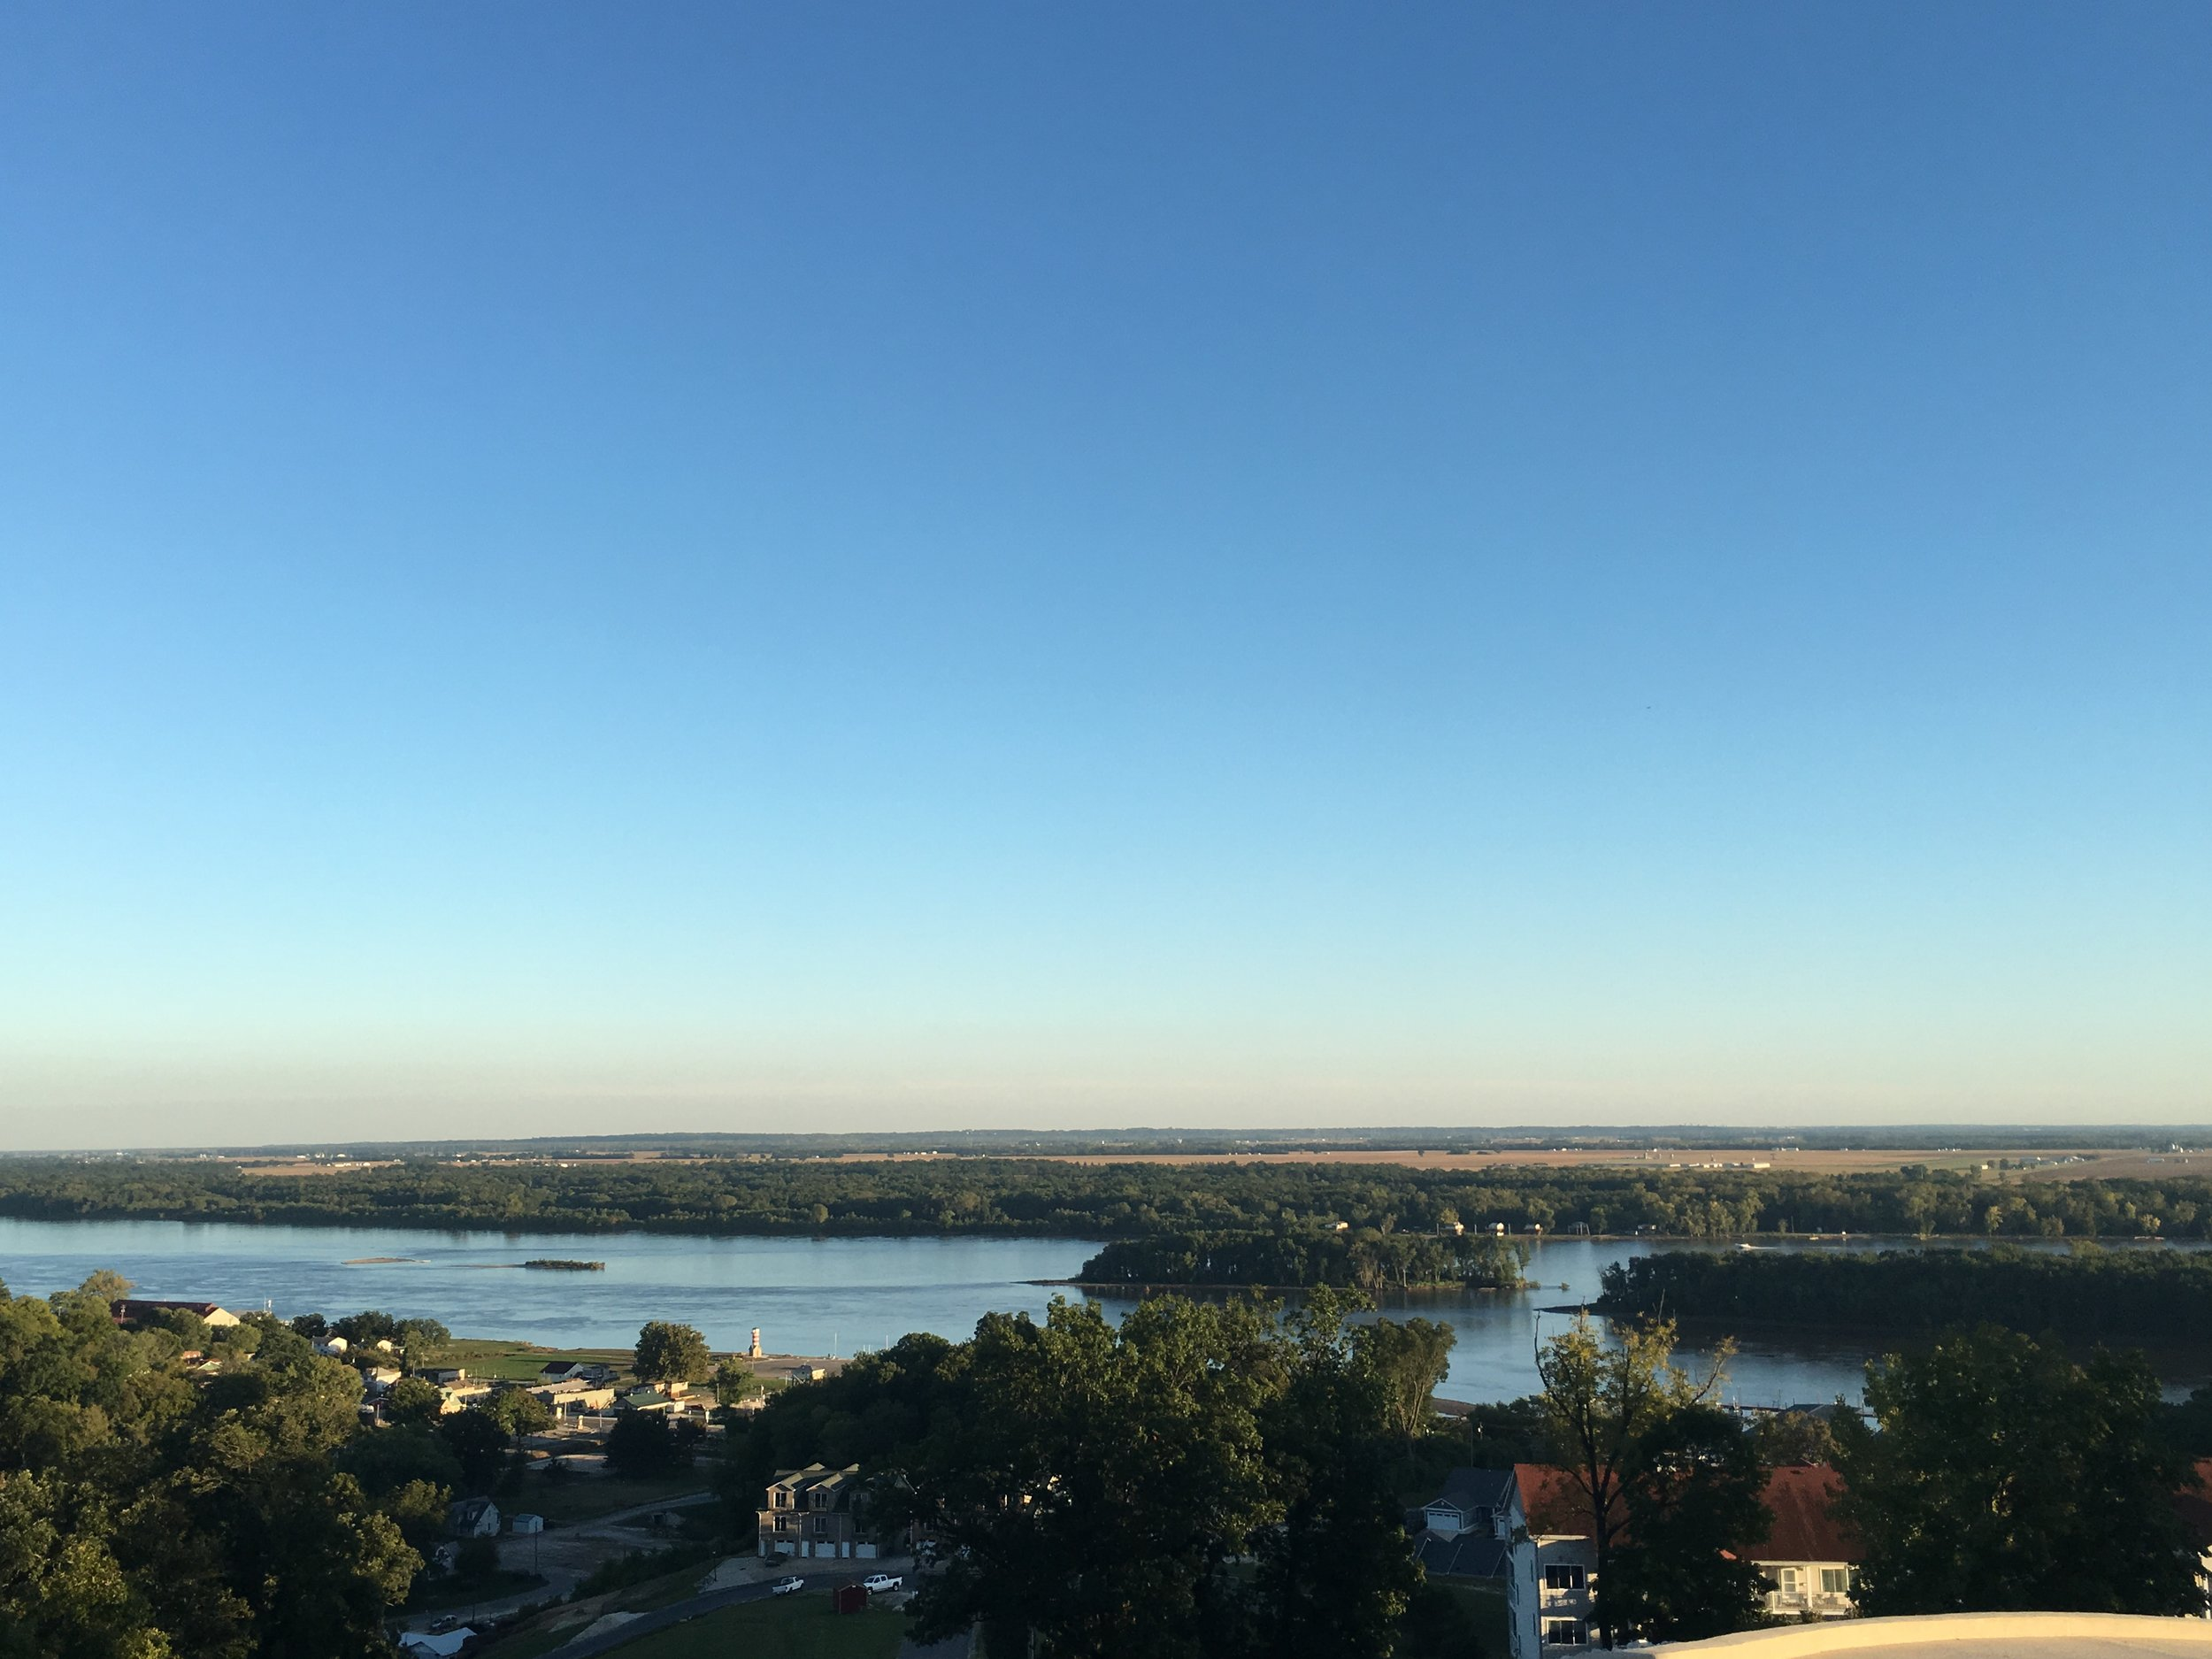 Winery view of the confluence of the Illinois and Mississippi Rivers